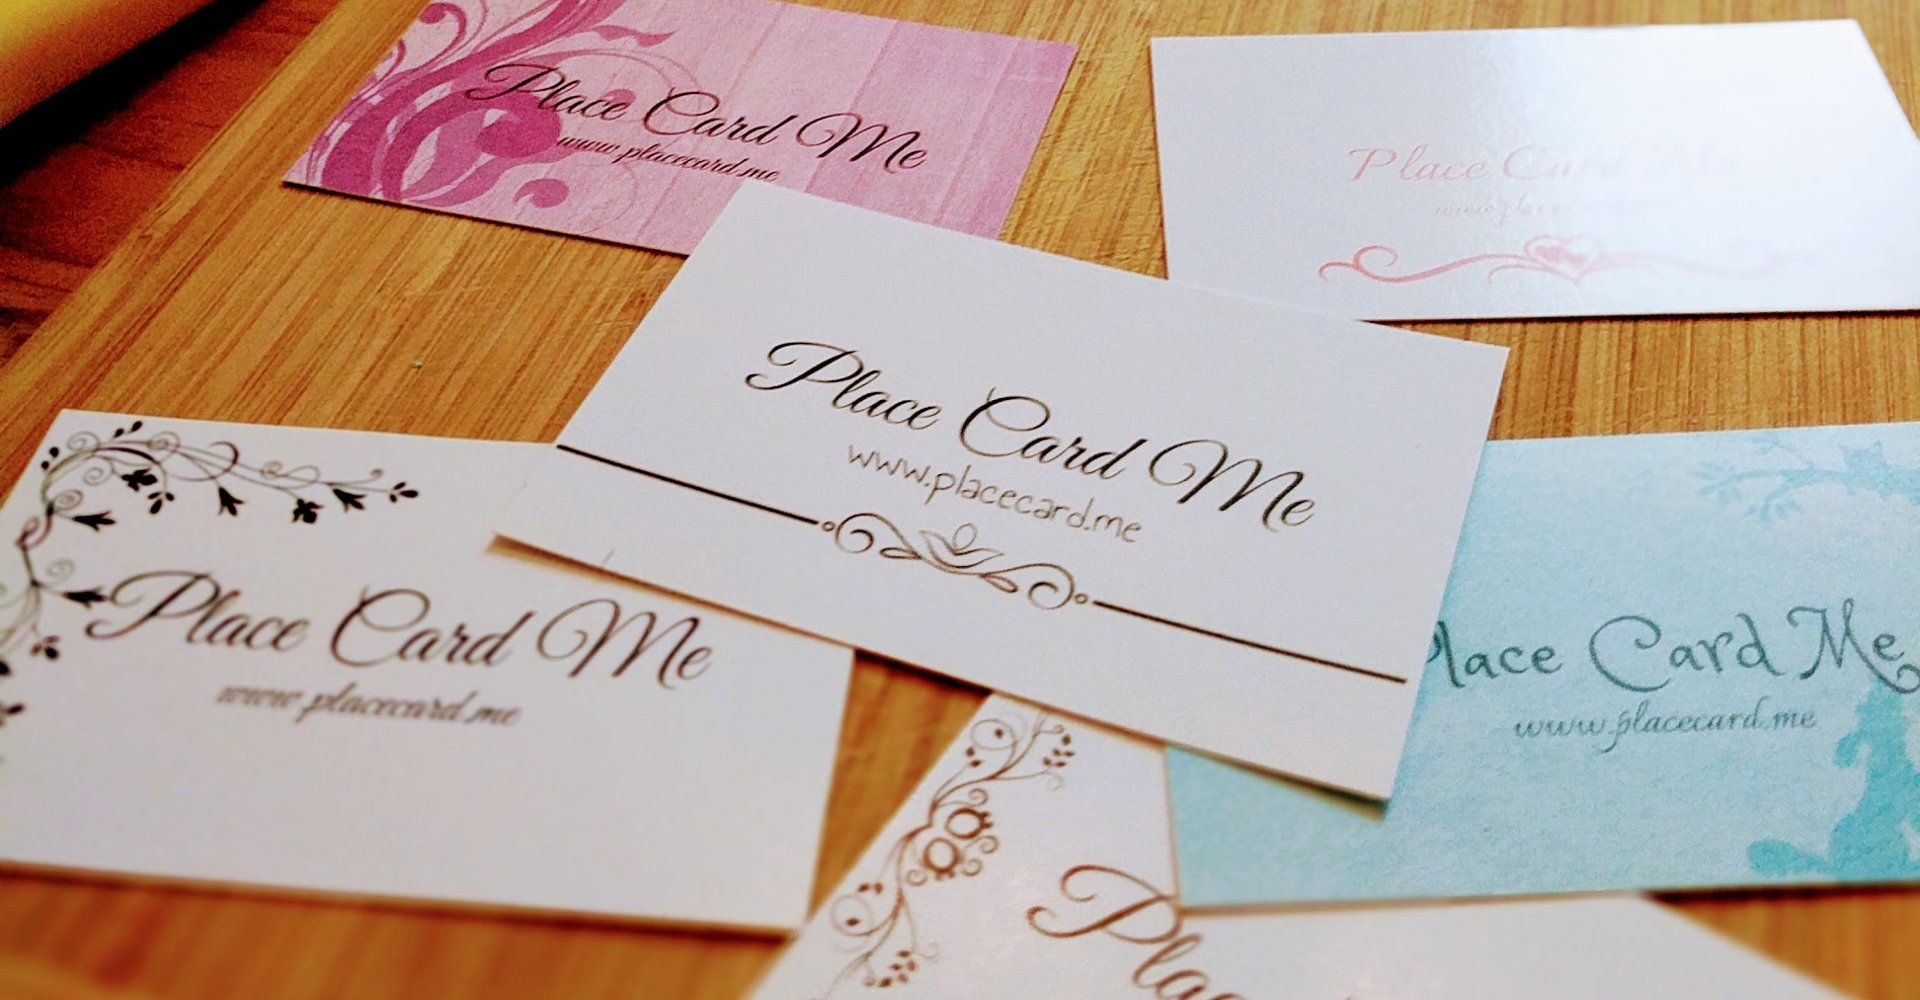 The Definitive Guide To Wedding Place Cards Place Card Me Inside Celebrate It Templ Free Place Card Template Wedding Place Card Templates Place Card Template